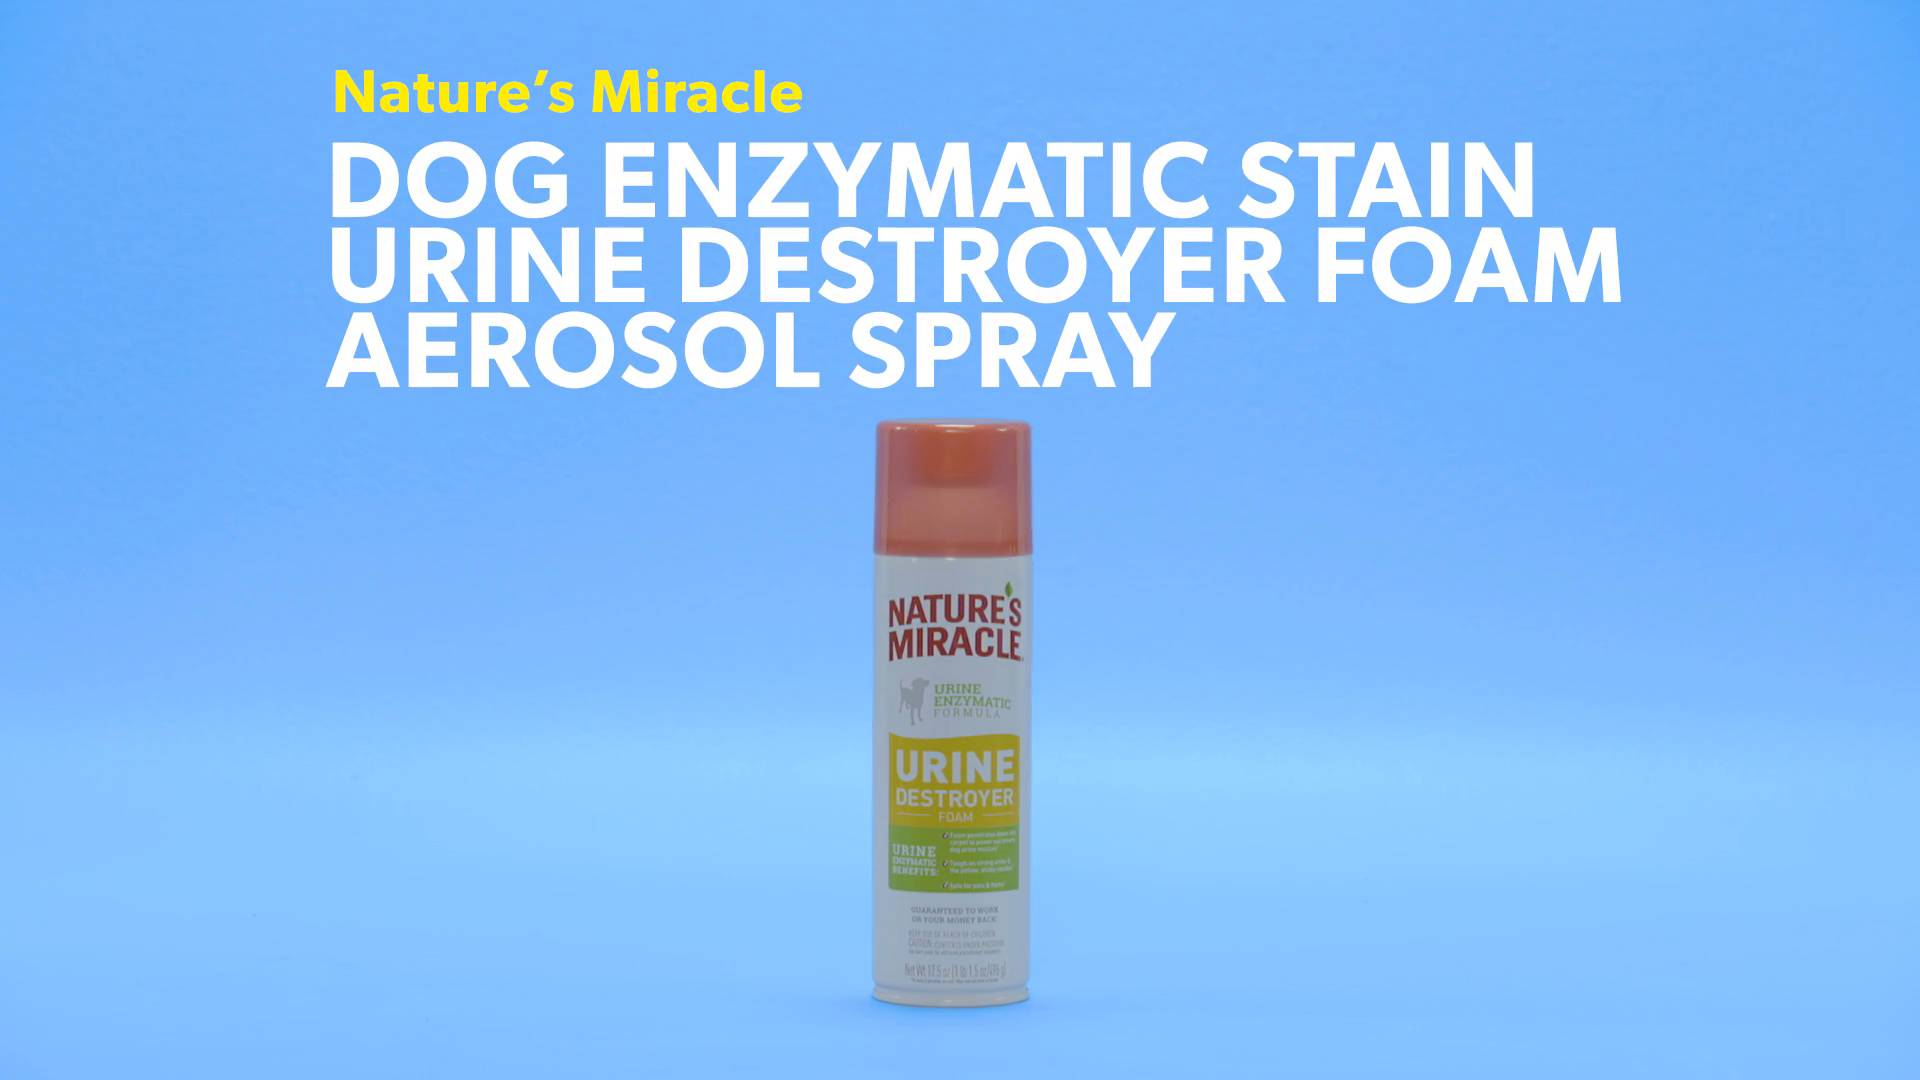 Nature's Miracle Dog Enzymatic Stain